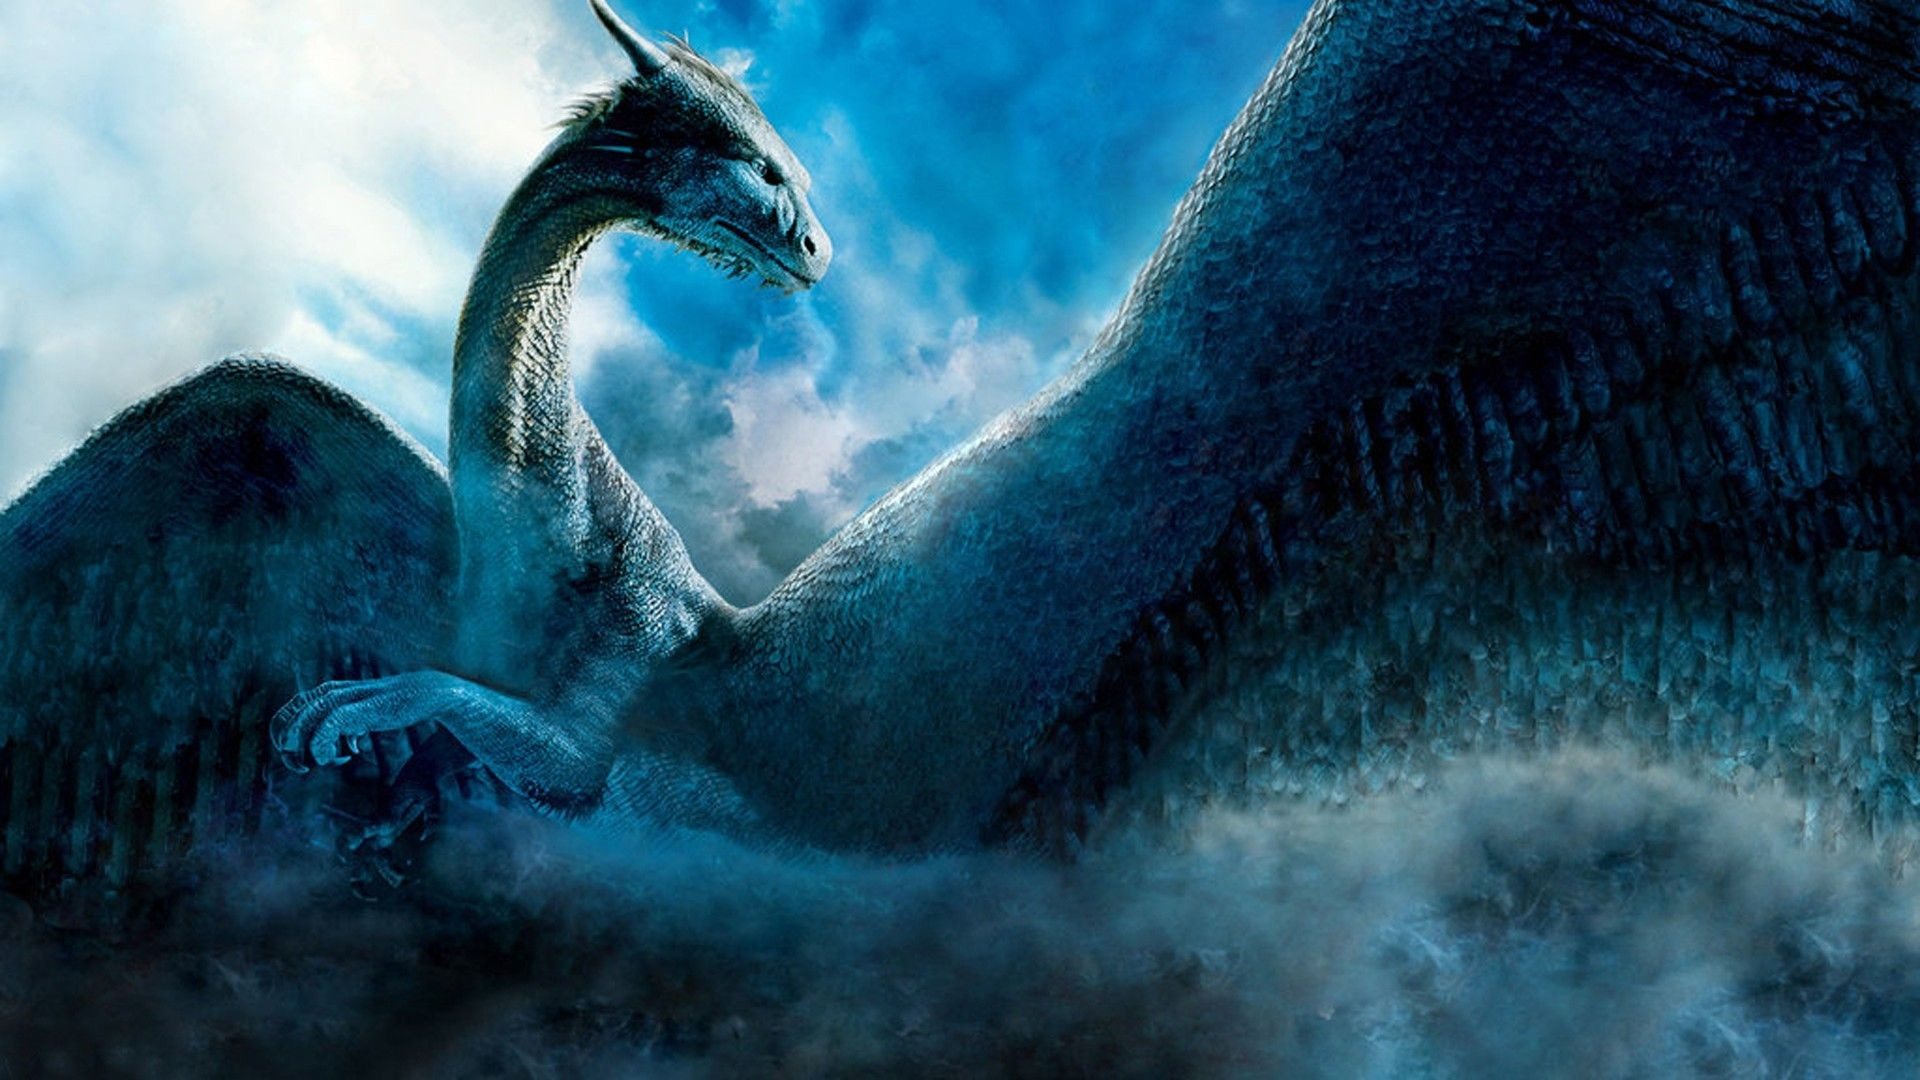 Dragon Wallpaper HD 1080p 76 images